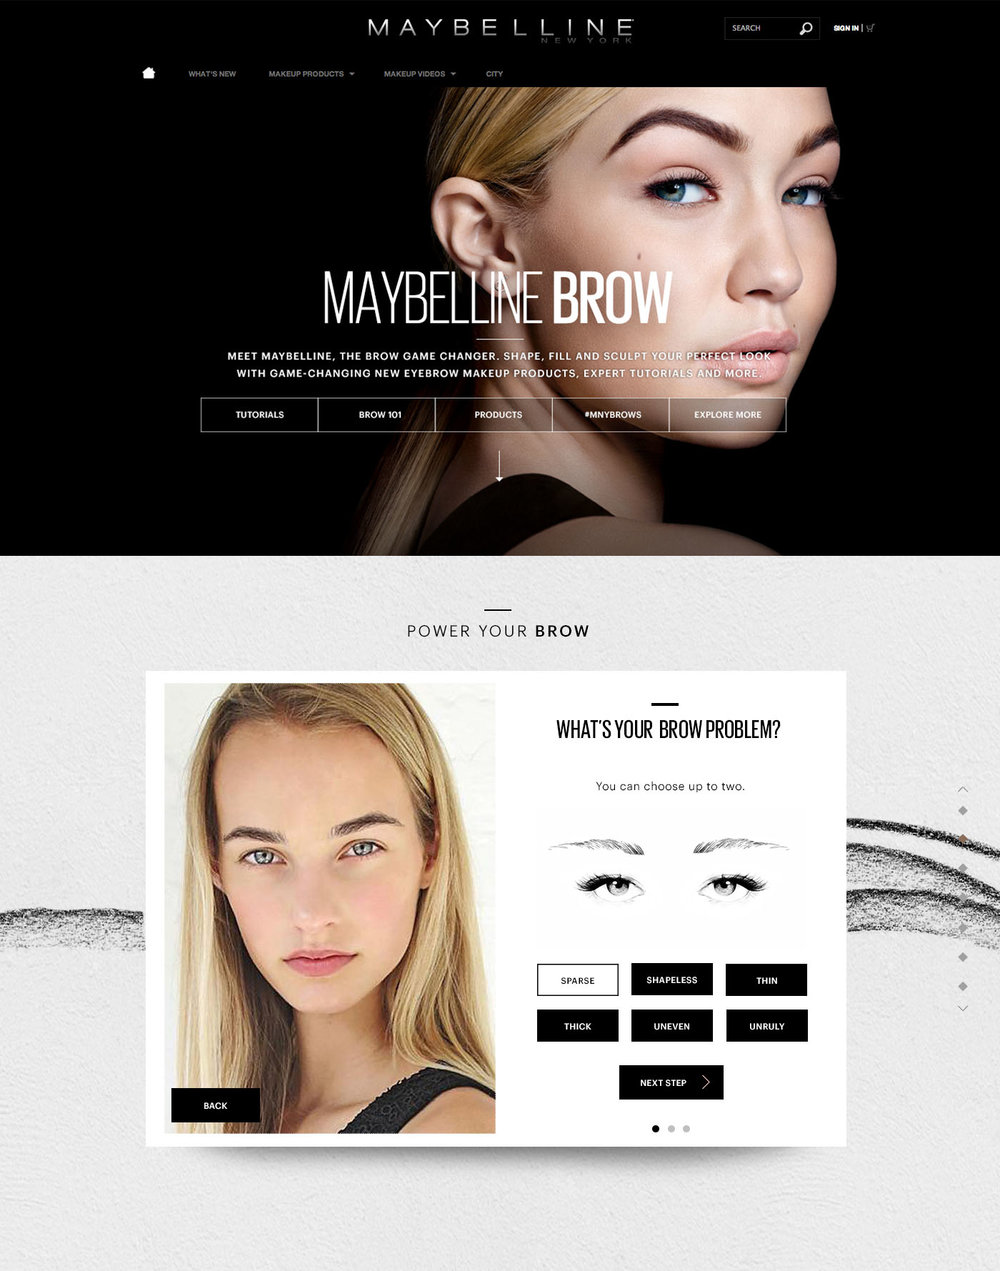 Maybelline Brow Play Iv T